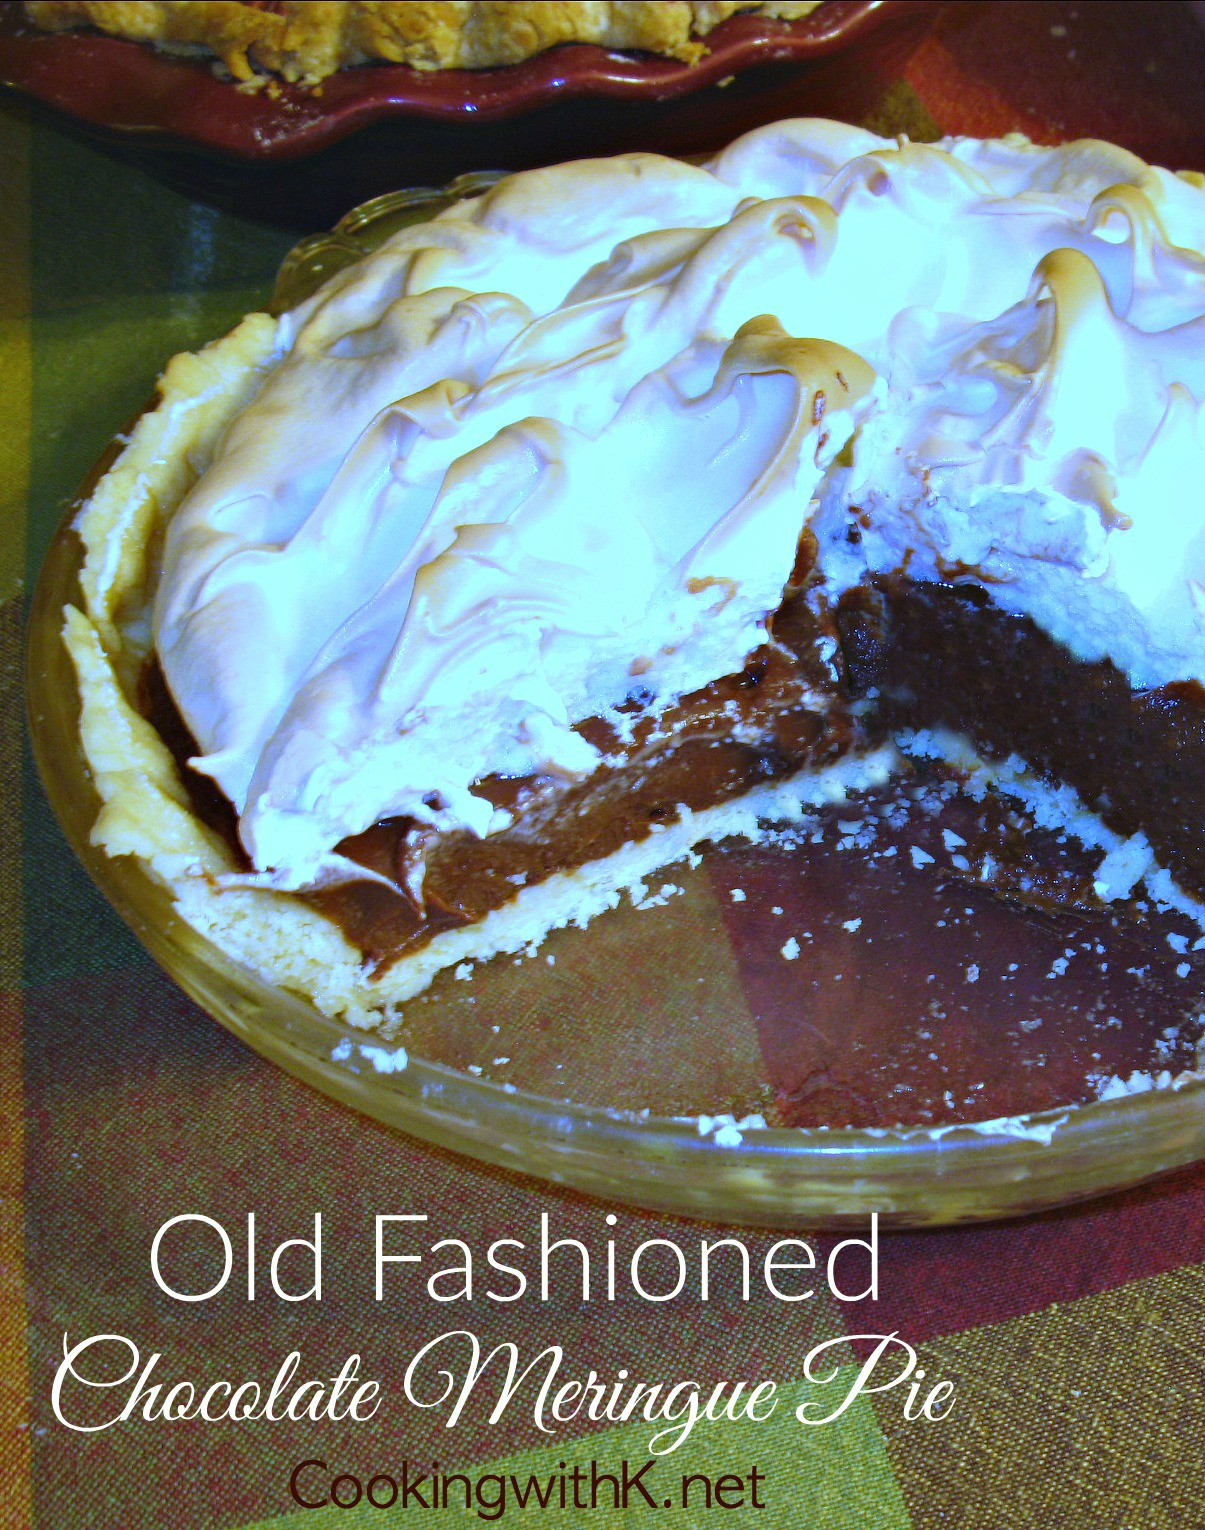 Cooking with K: Old Fashioned Chocolate Meringue Pie